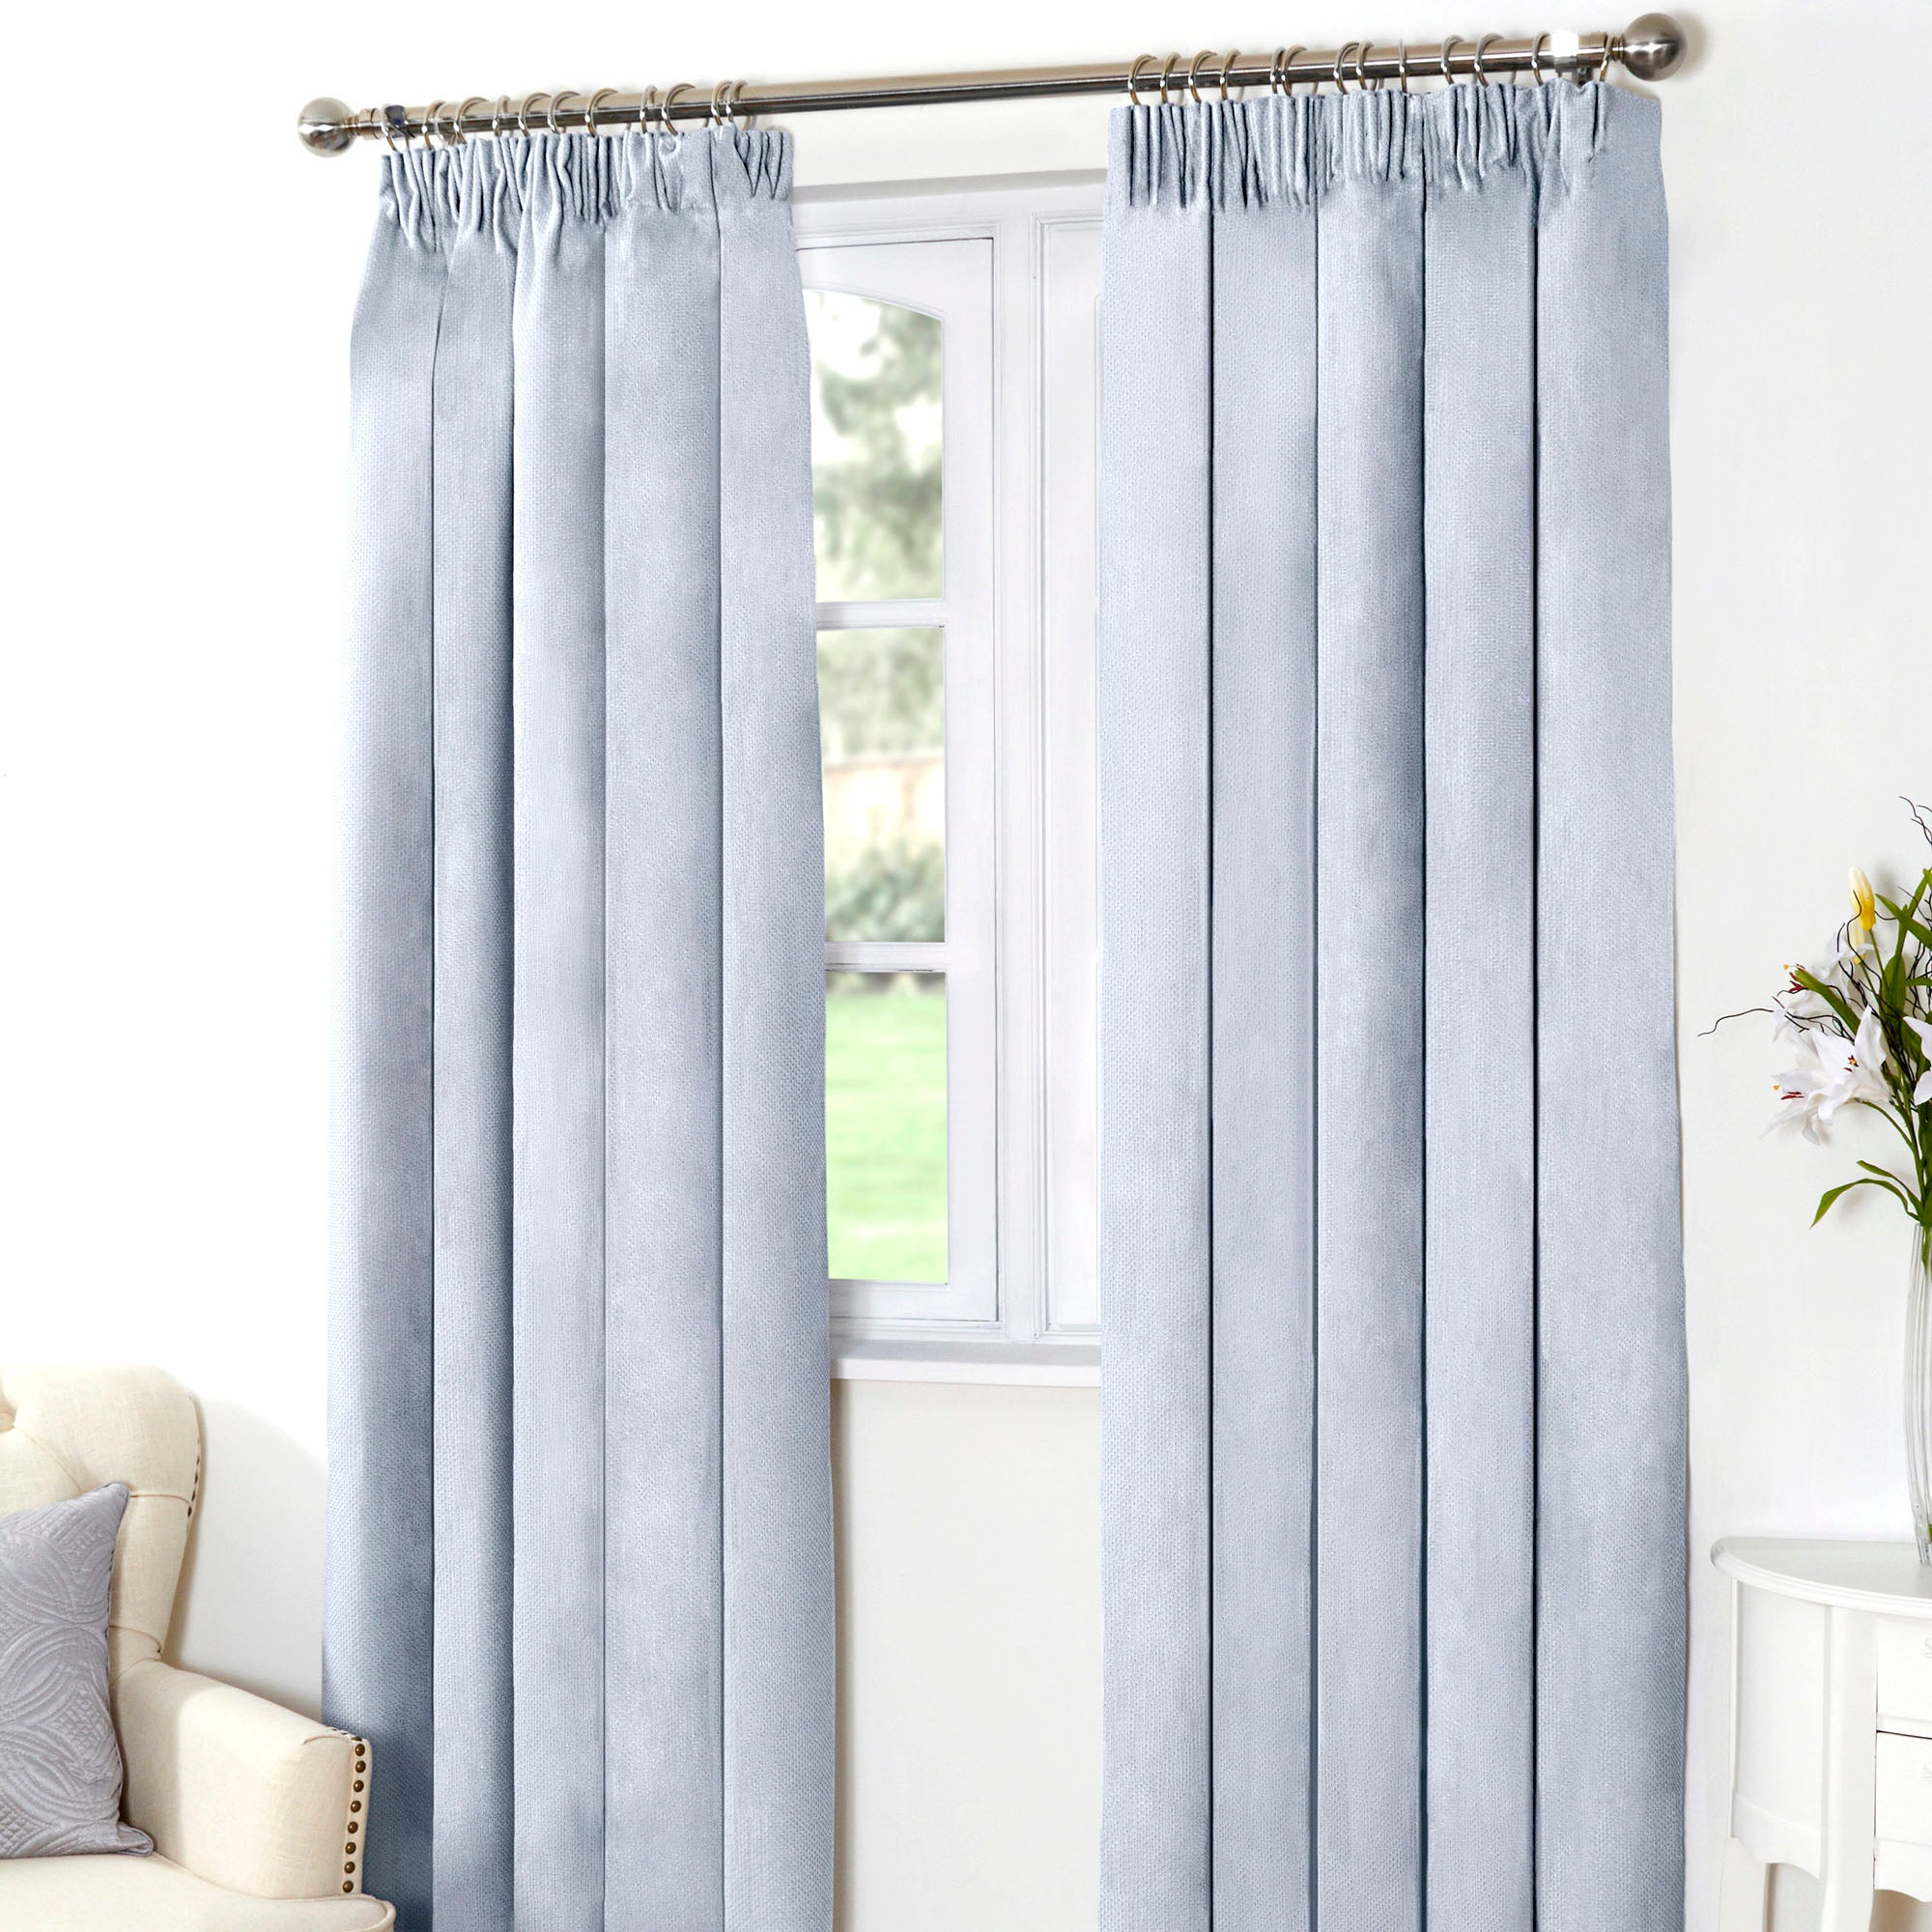 Duck Egg Aspen Thermal Pencil Pleat Curtains